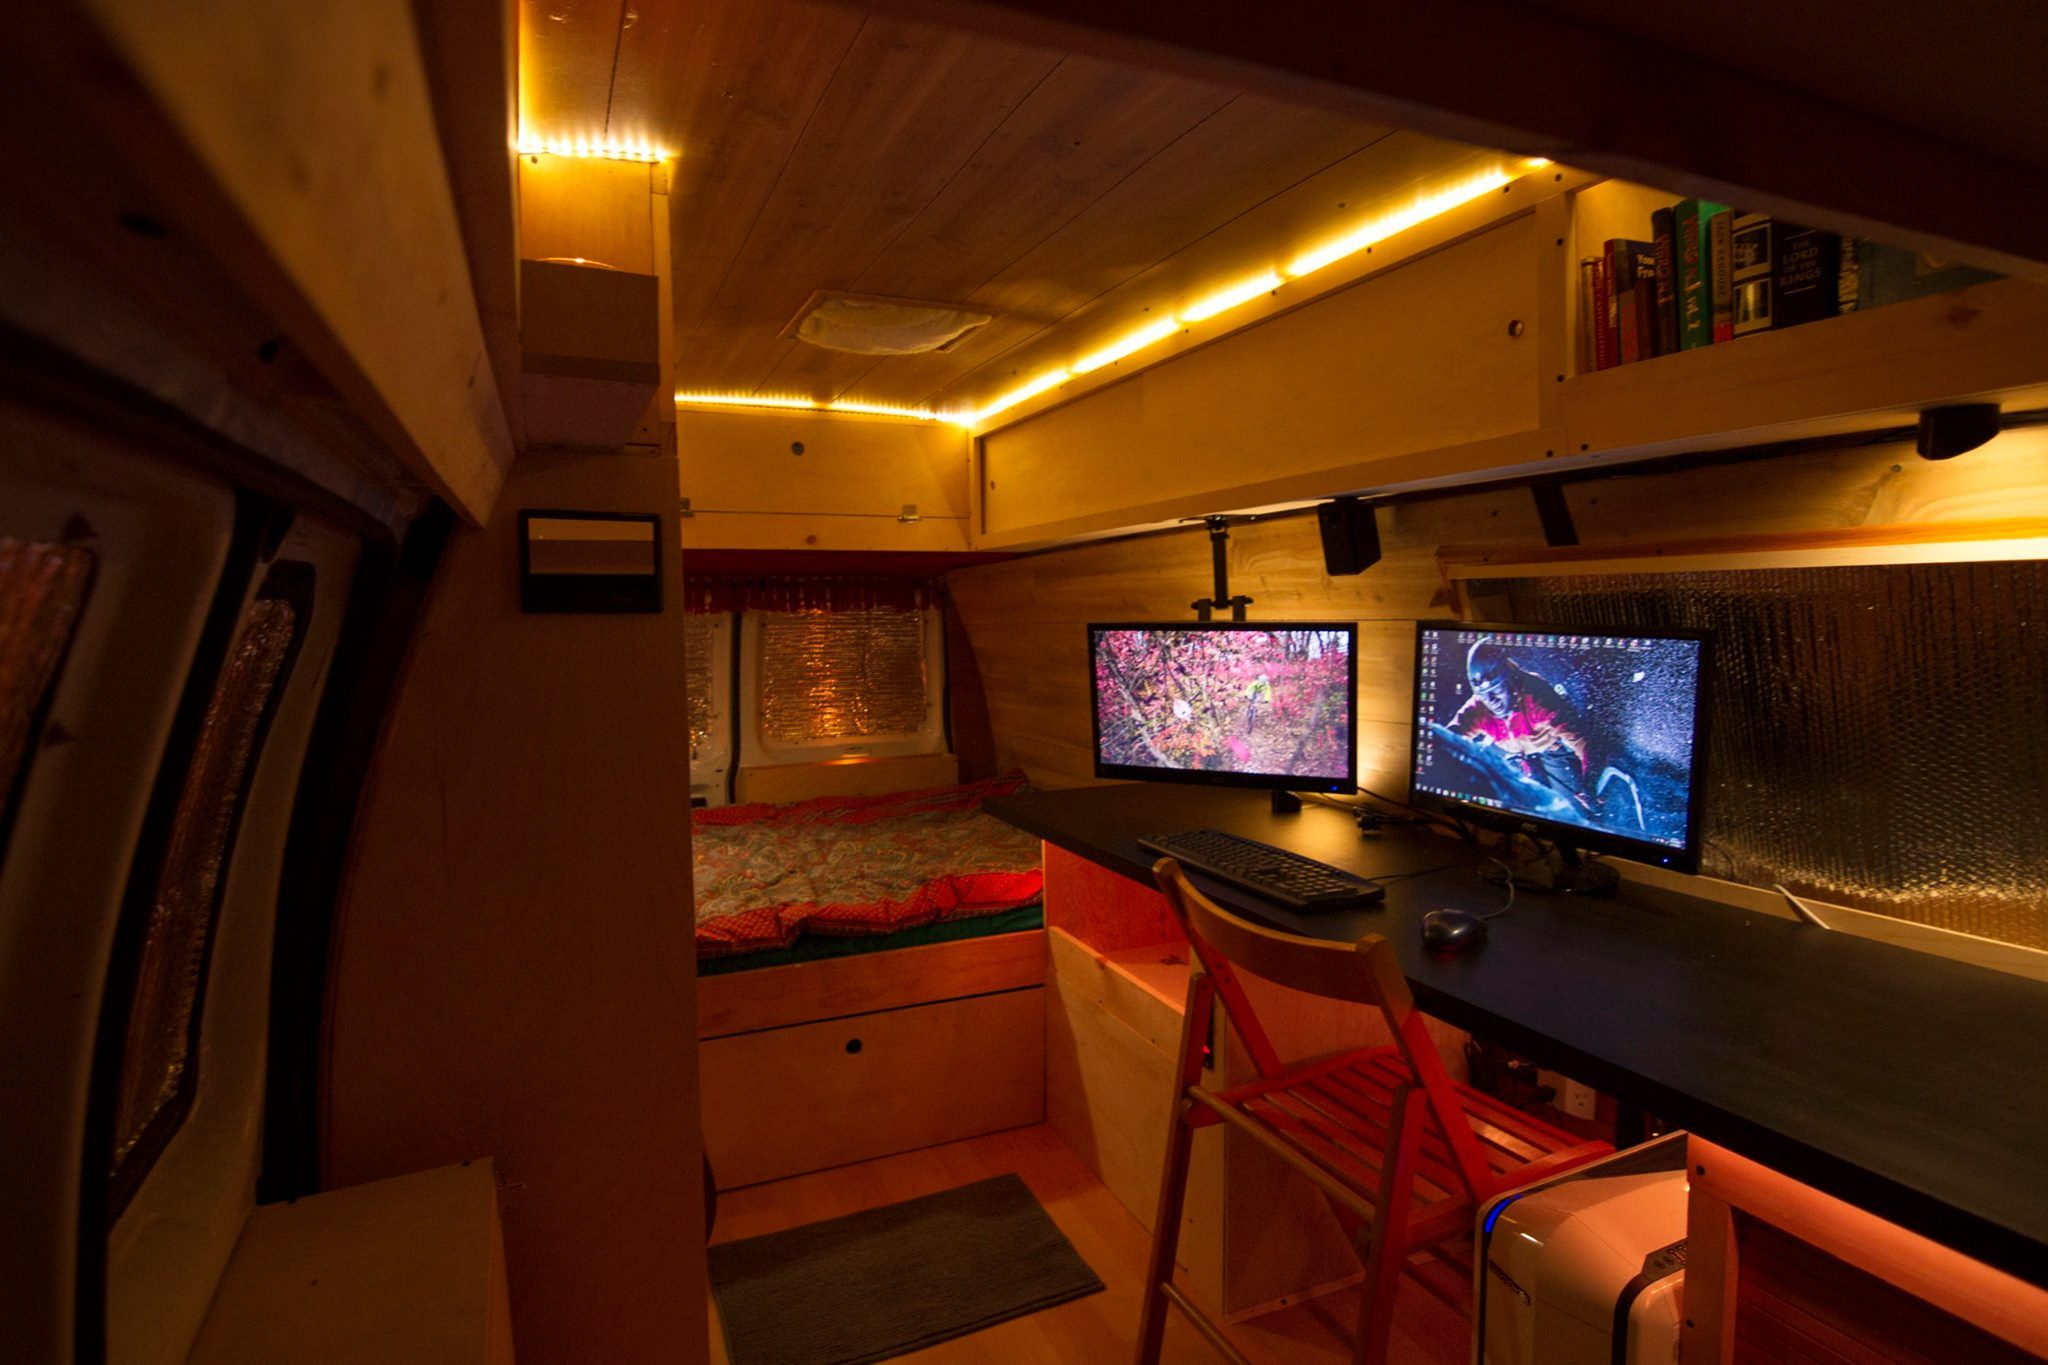 How I Turned An Old NYPD Surveillance Van Into A Home